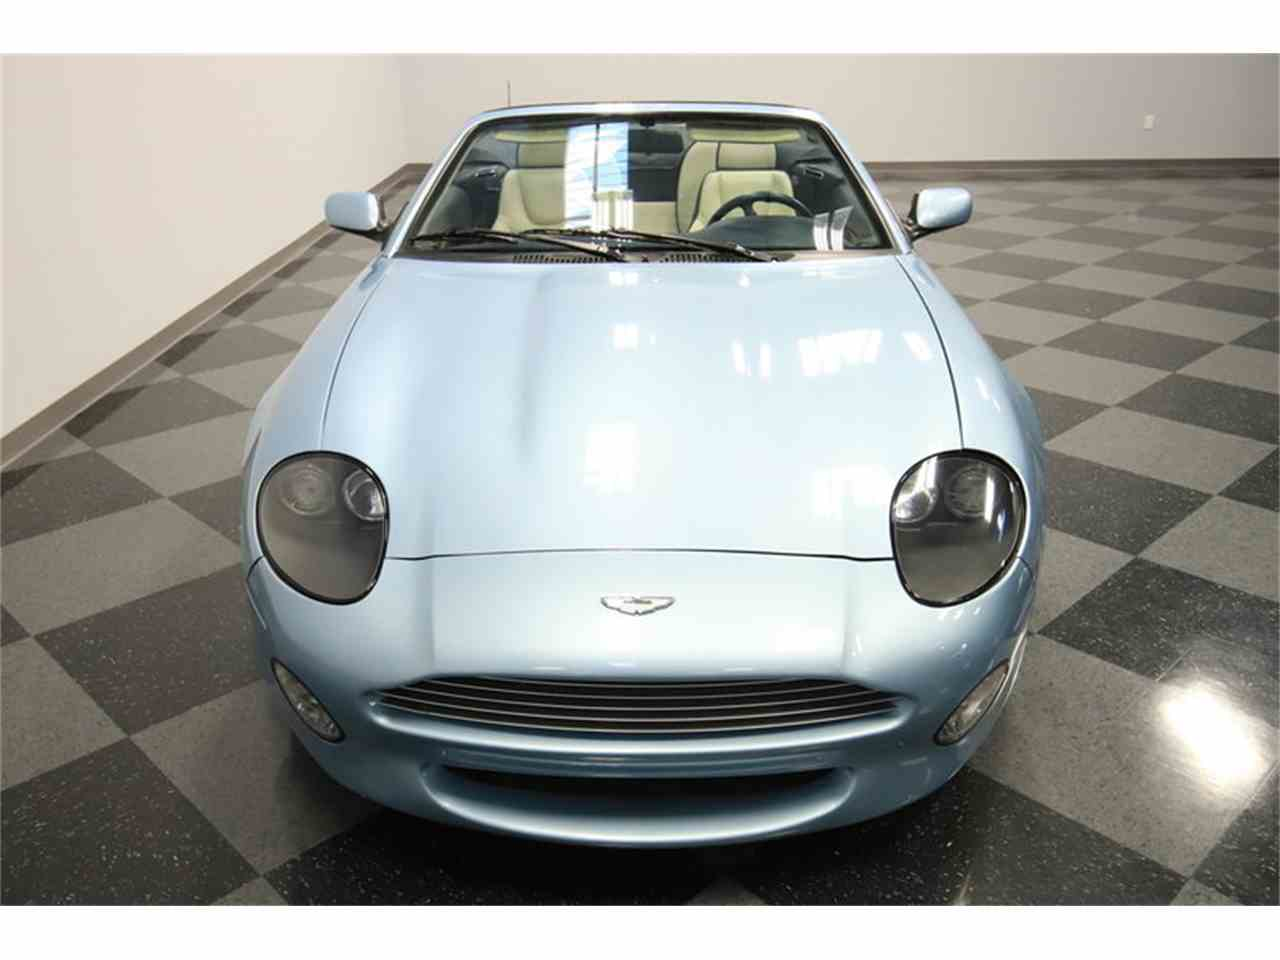 Large Picture of 2000 Aston Martin DB7 Vantage Volante located in Mesa Arizona - M73B